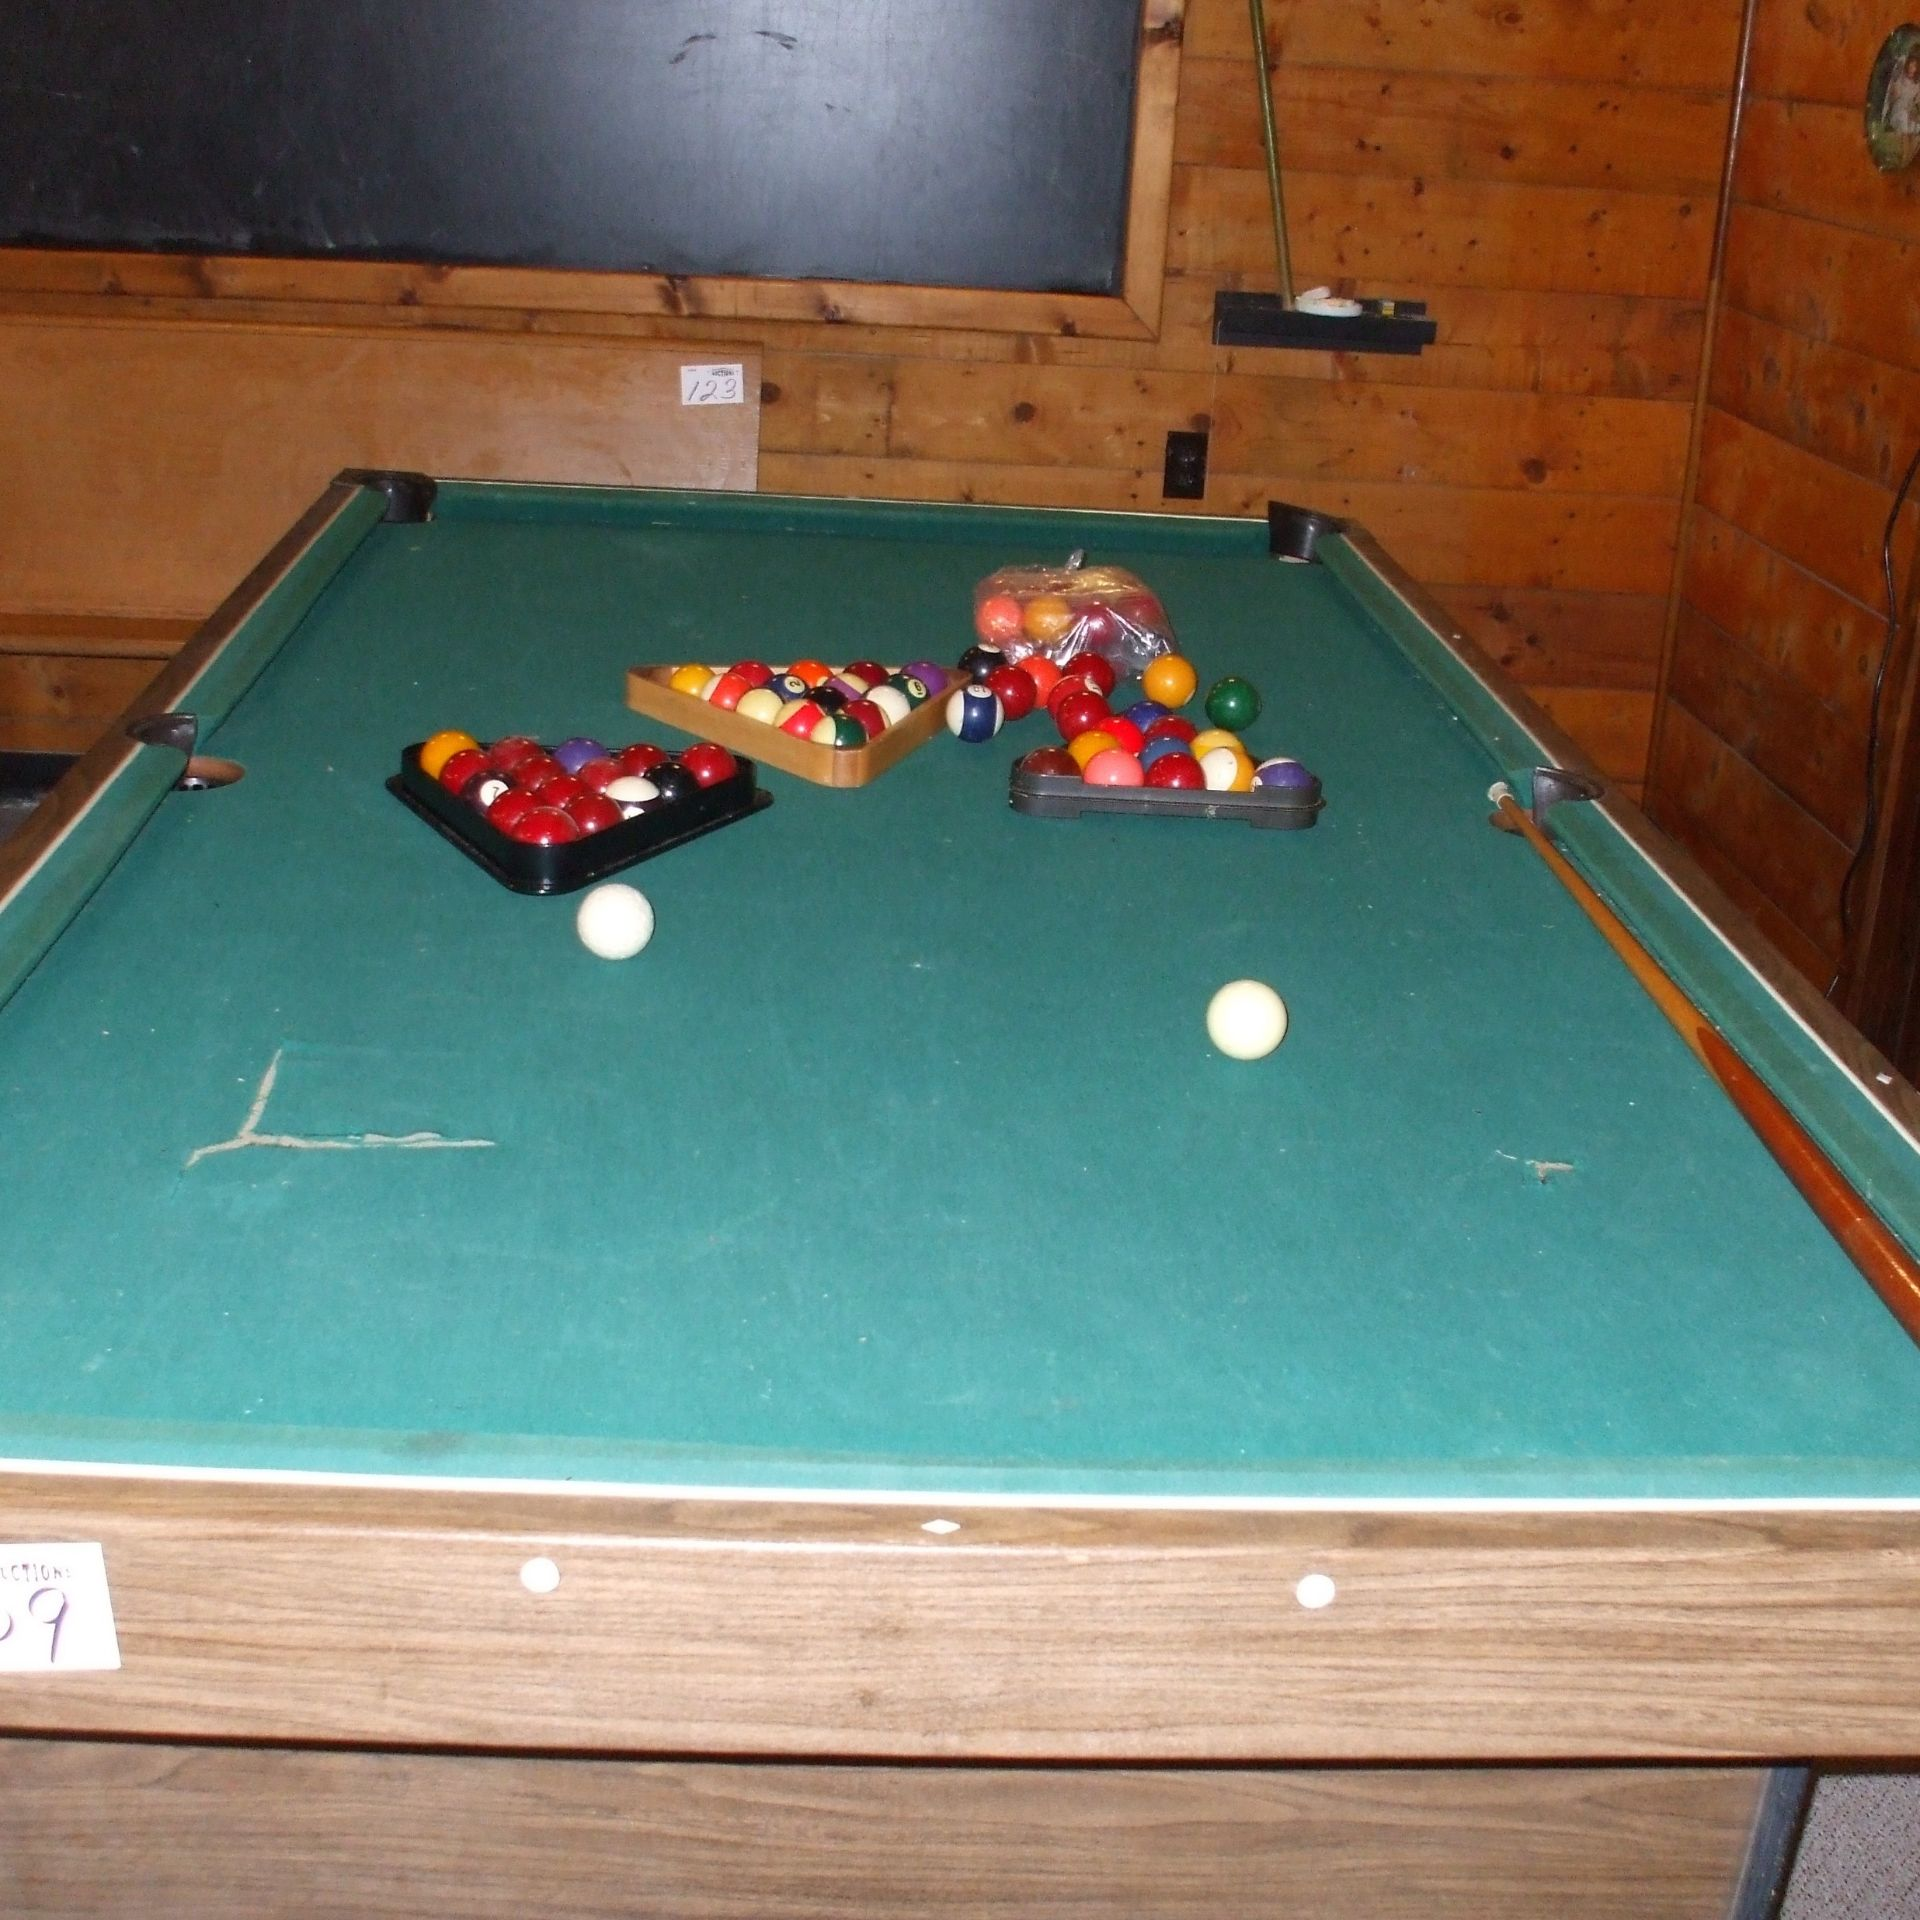 Pool table, balls & cues - Image 3 of 4